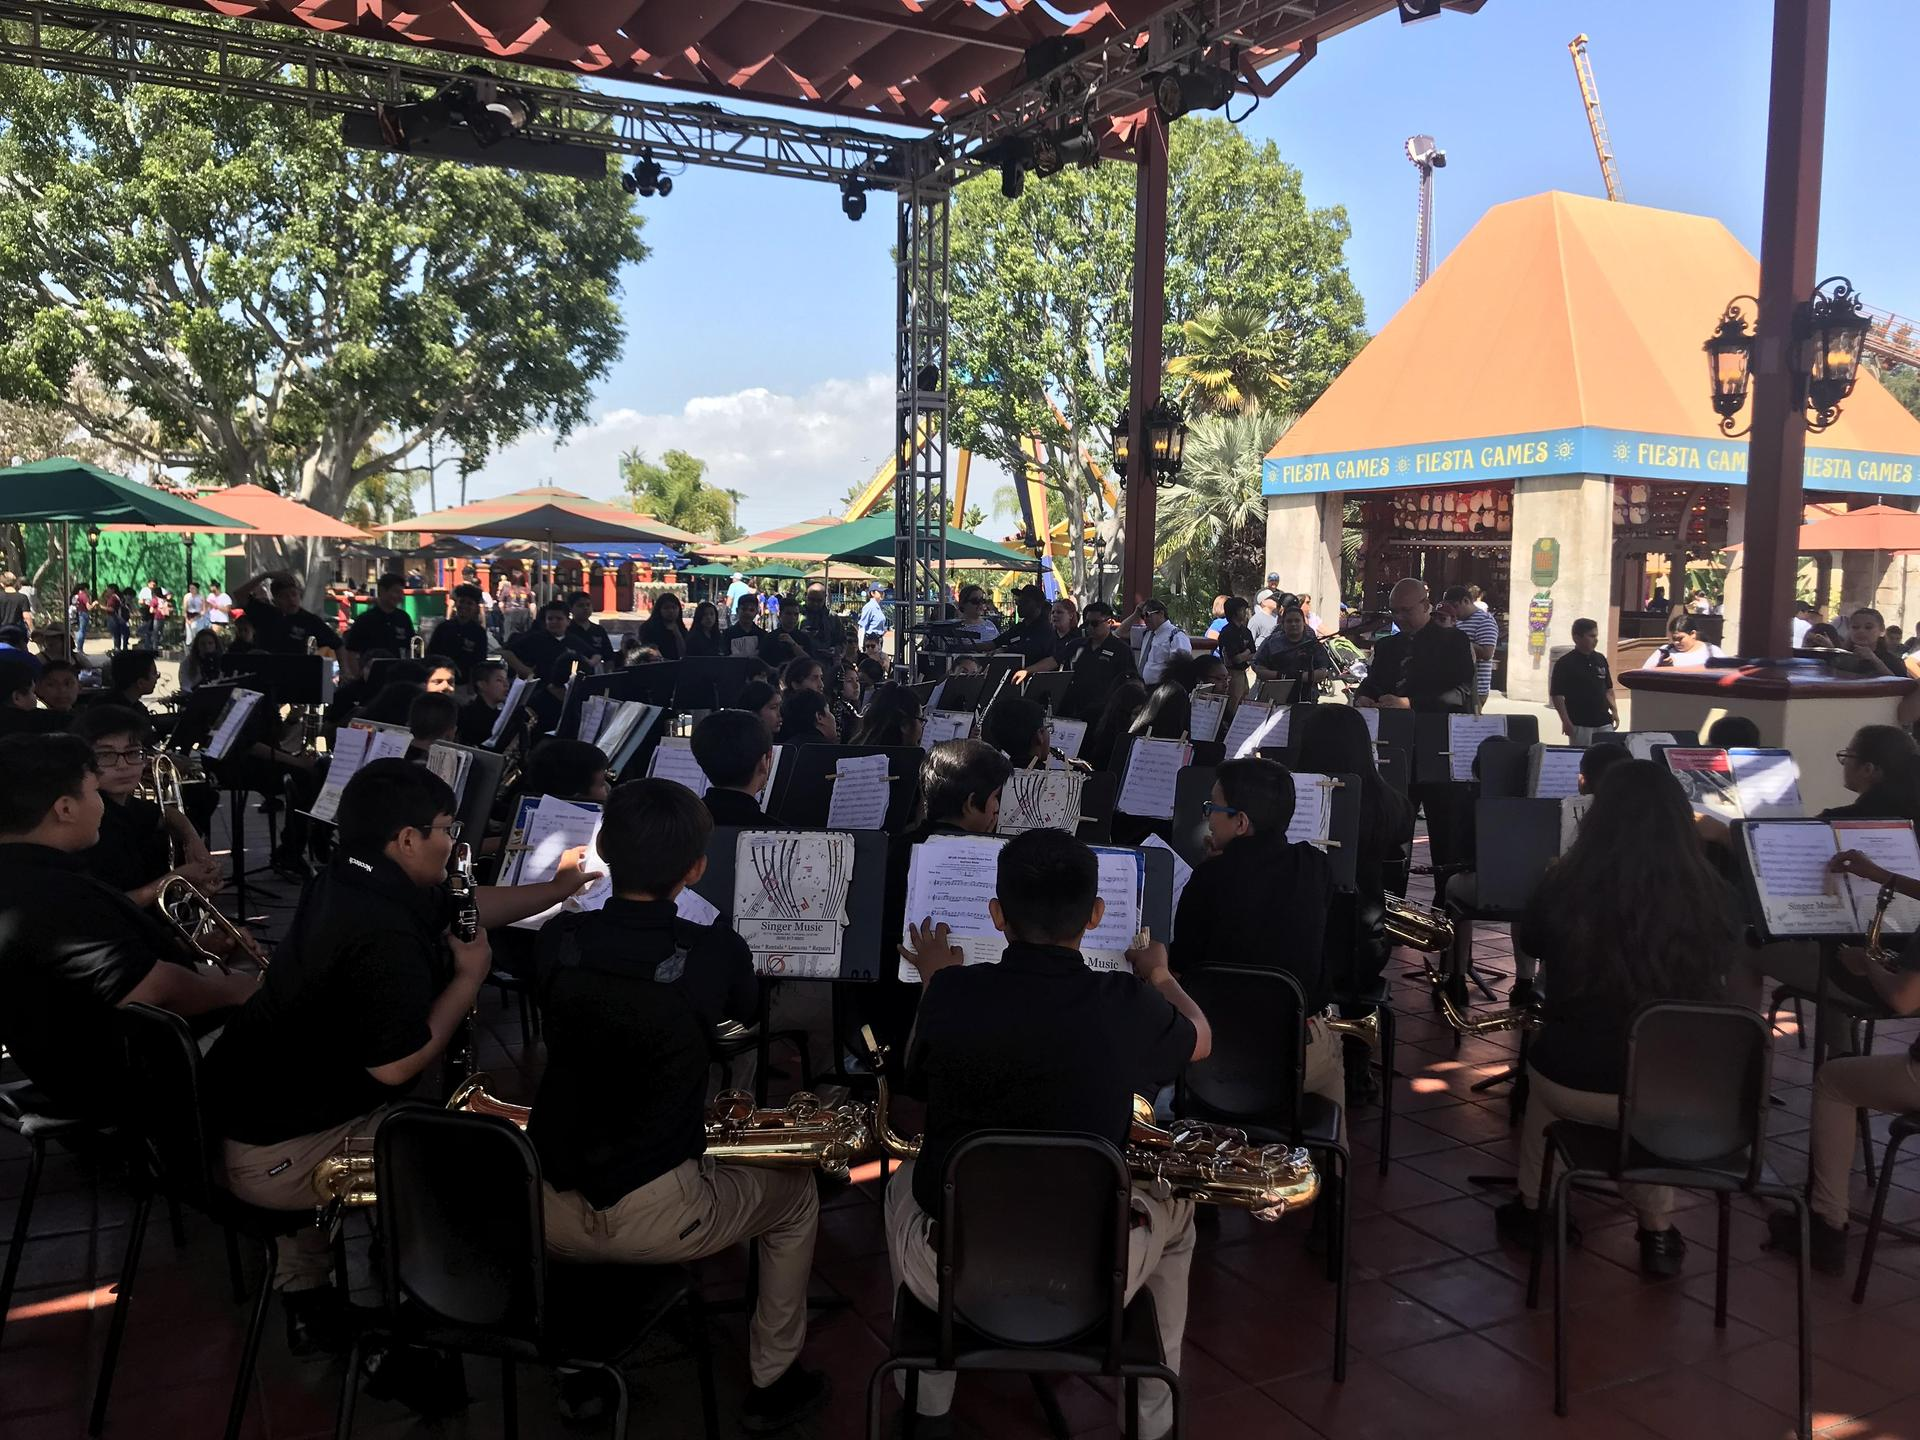 SVJH bands performing @ Knott's Berry Farm 4/12/19